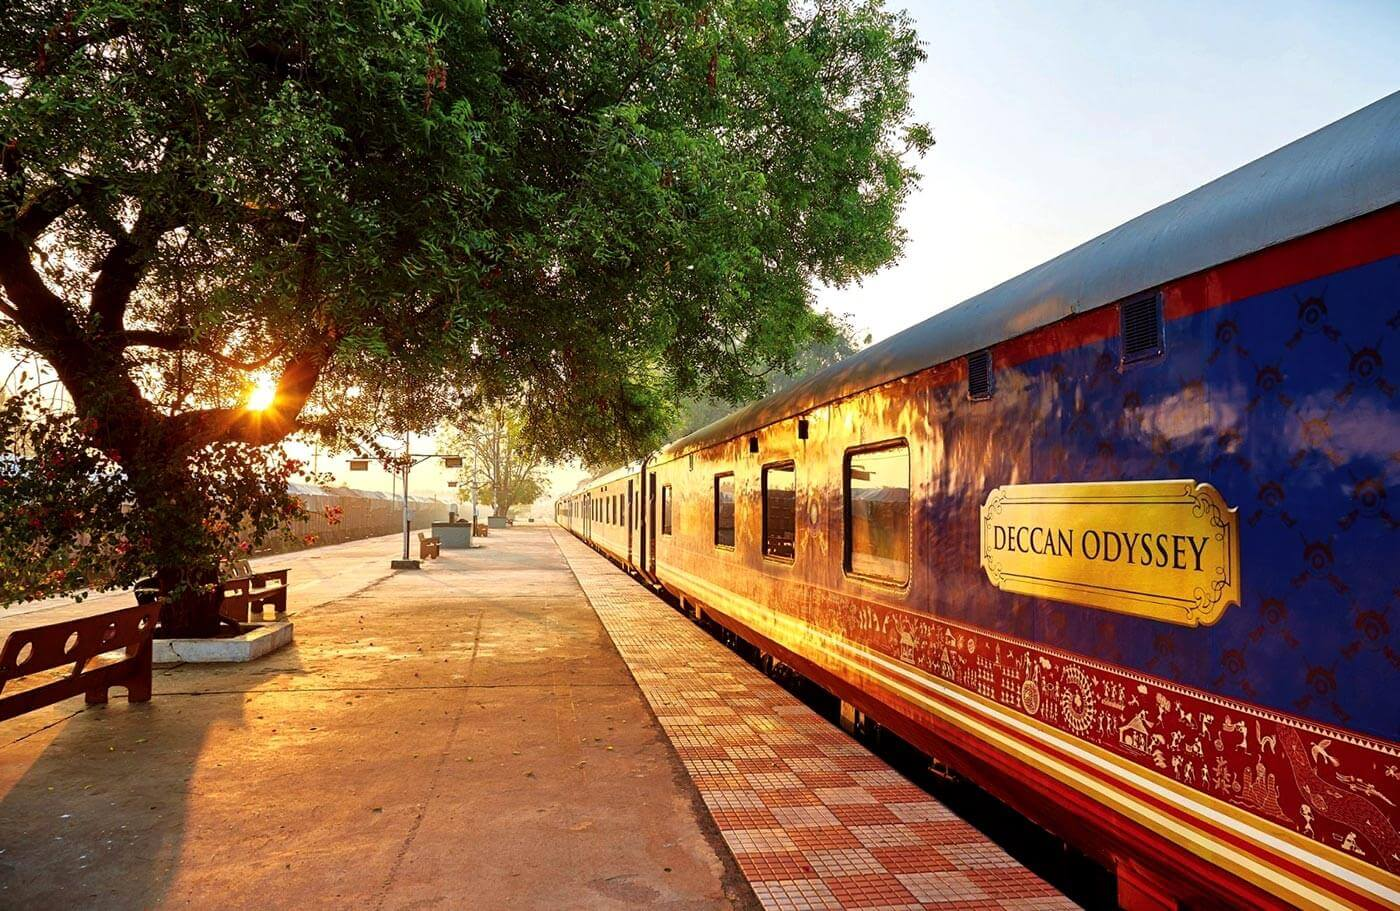 Destinations Covered By Deccan Odyssey Train